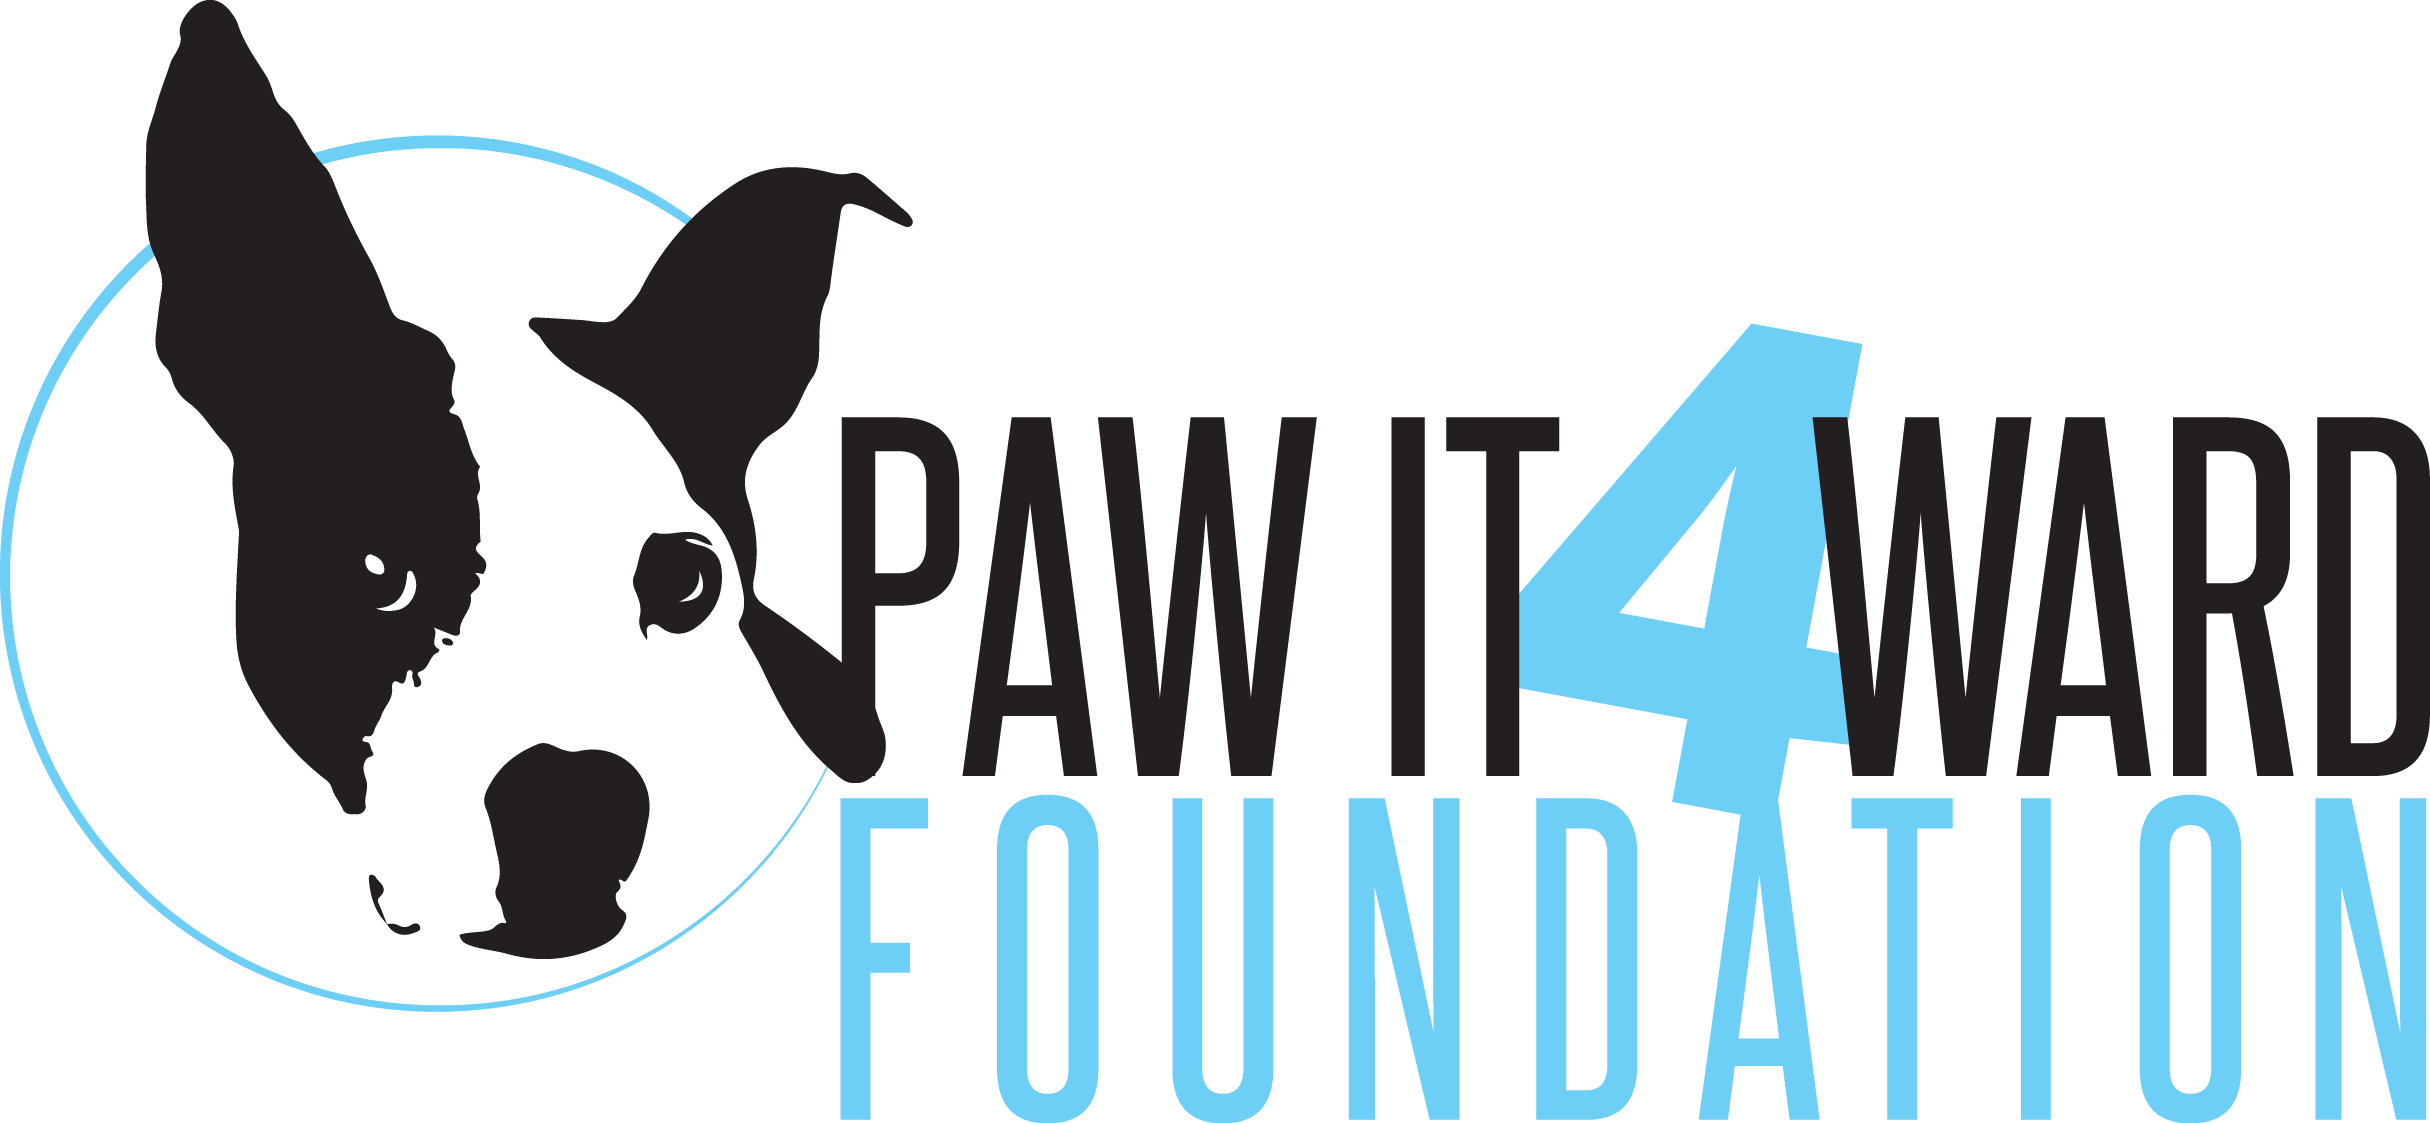 Paw It 4ward Foundation logo